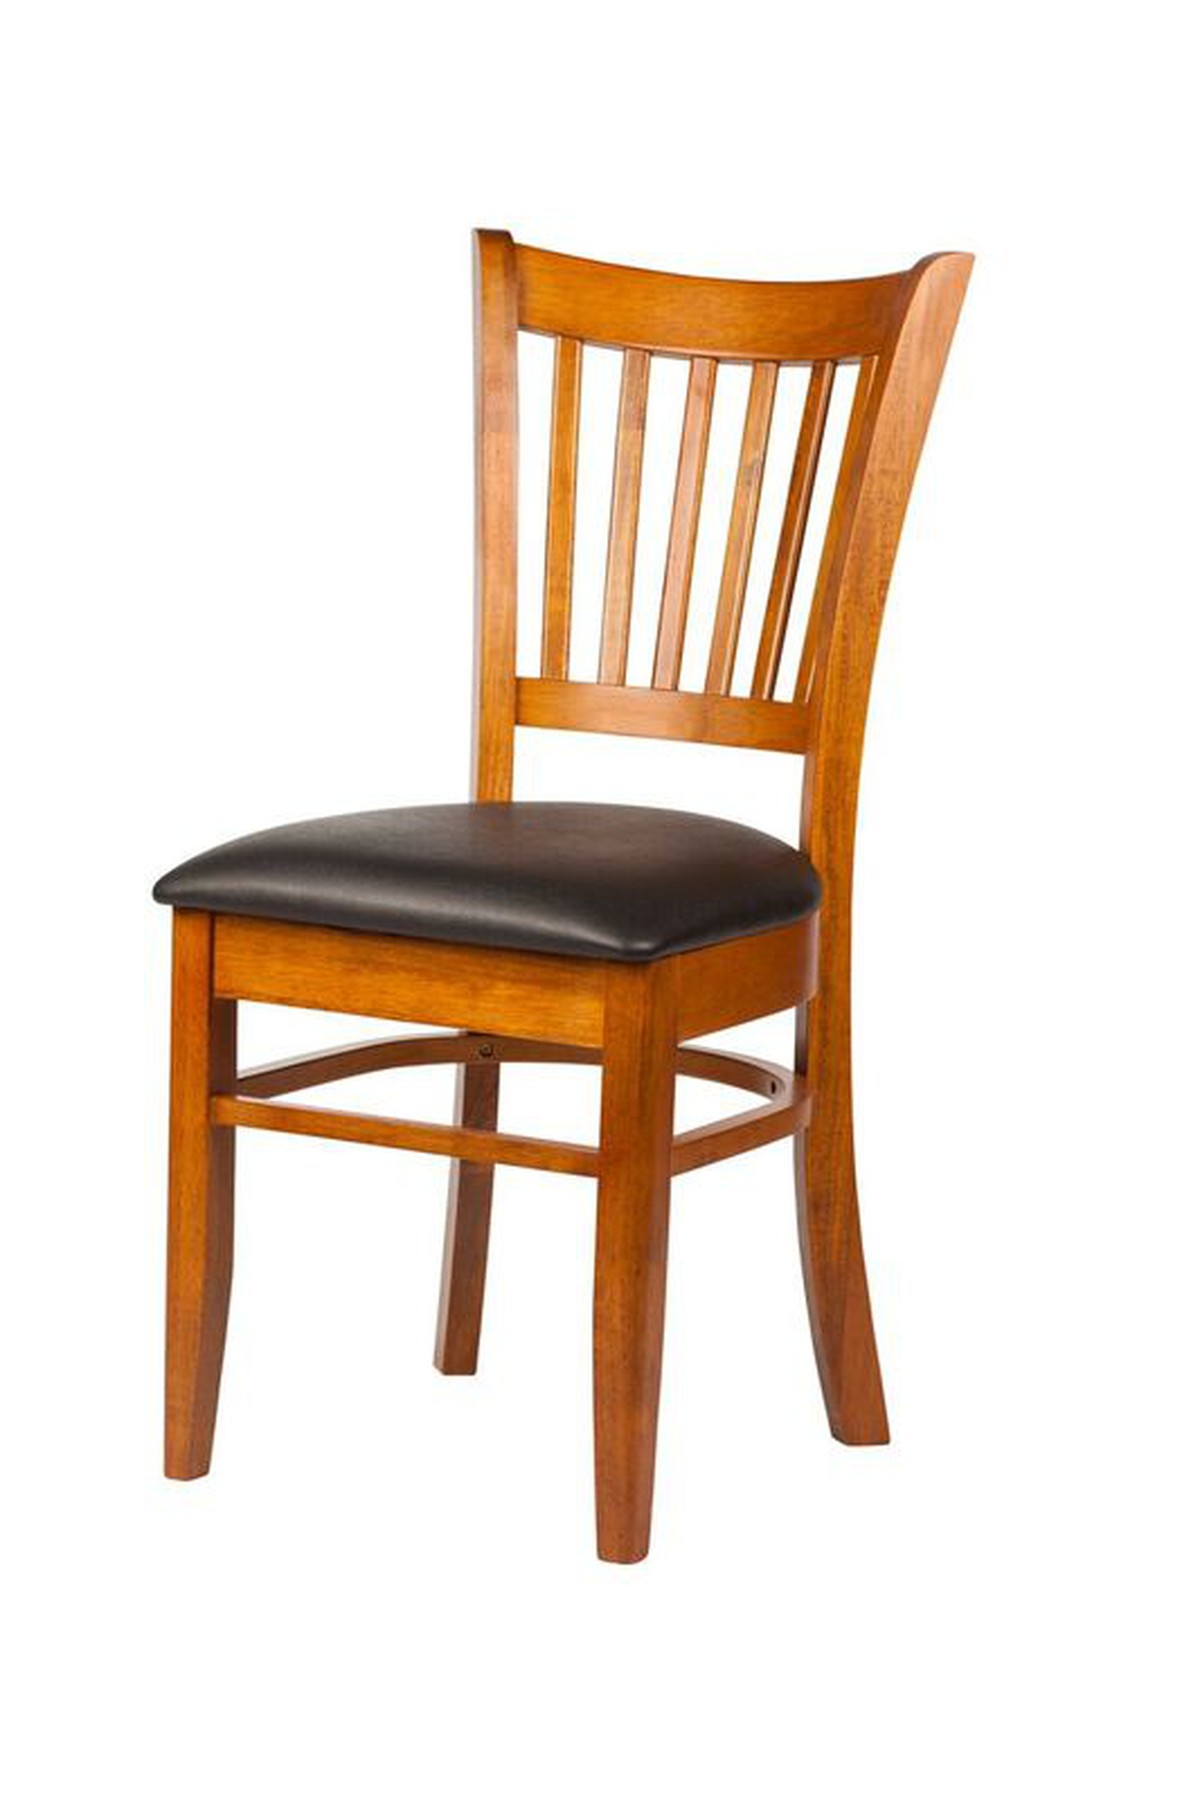 hotel chairs for sale mid century lounge chair secondhand furniture dining new cambridge